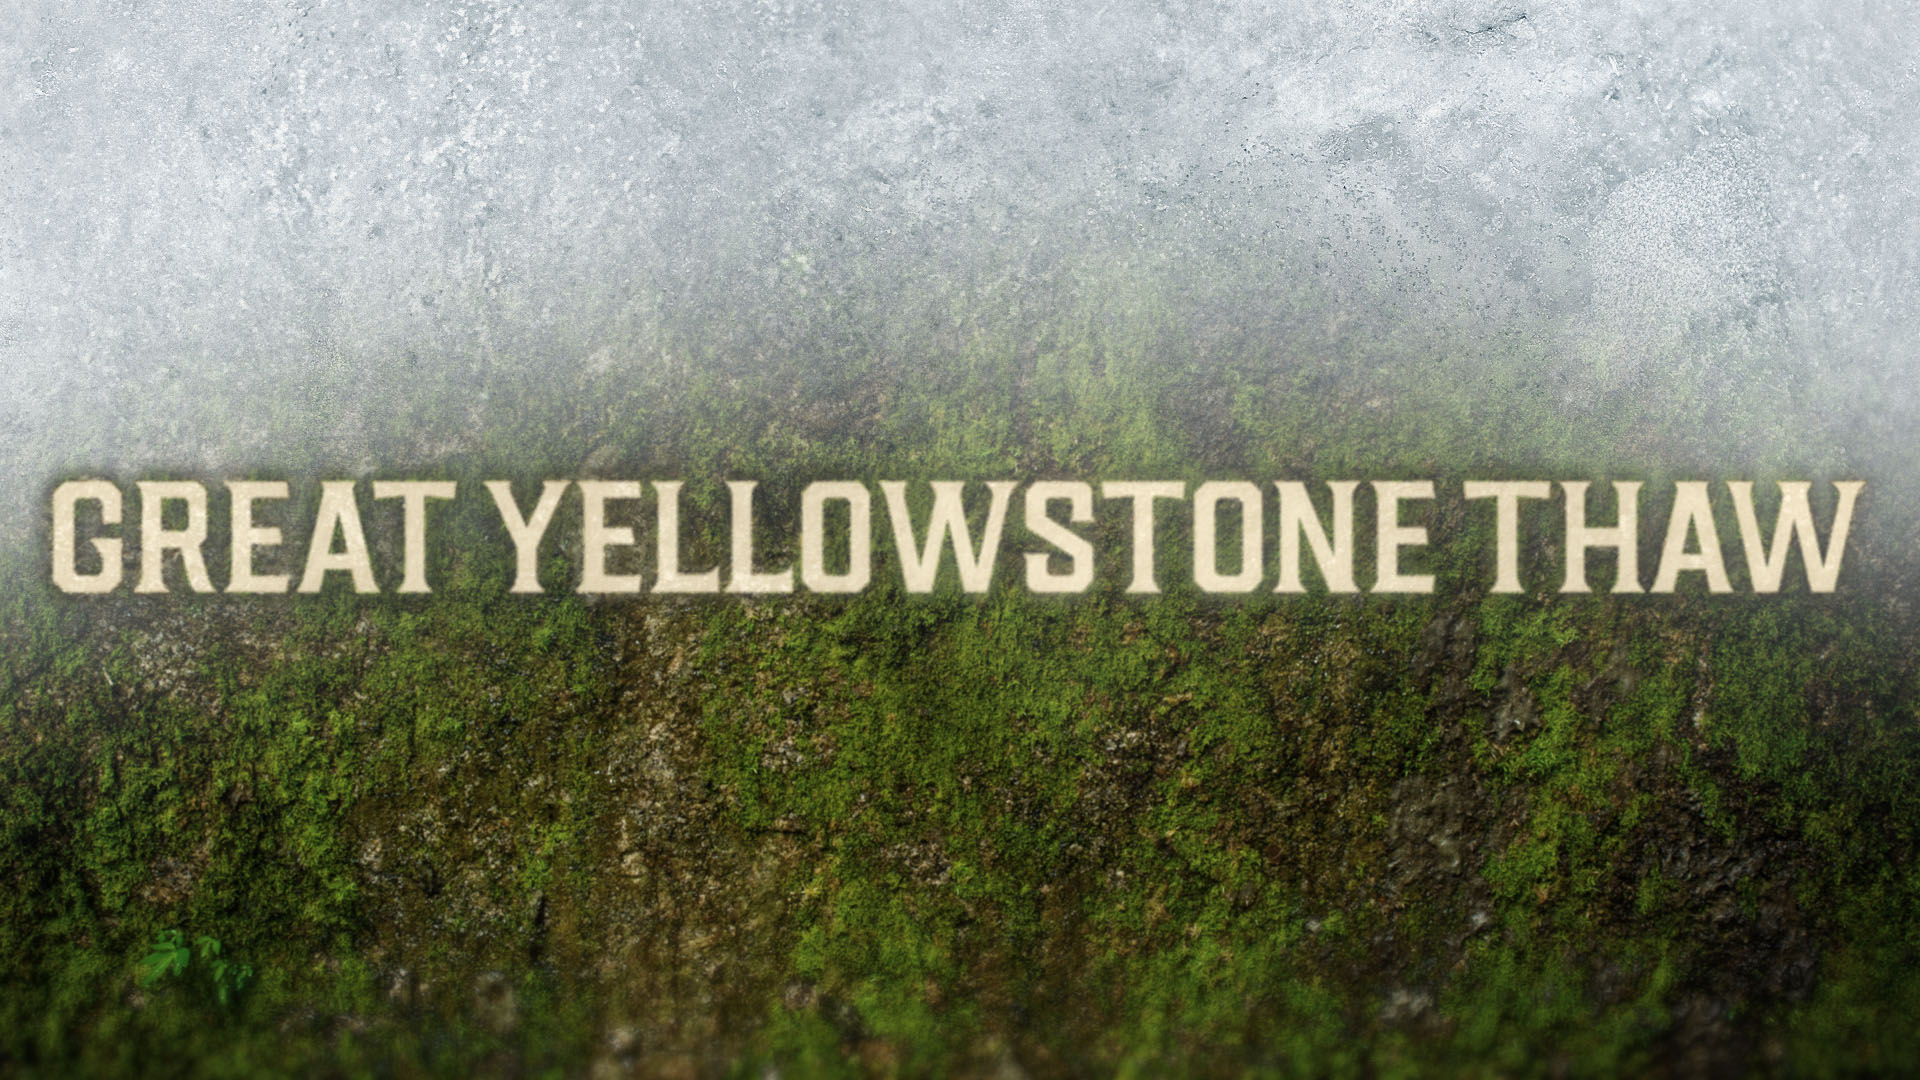 Great Yellowstone Thaw: Episode One